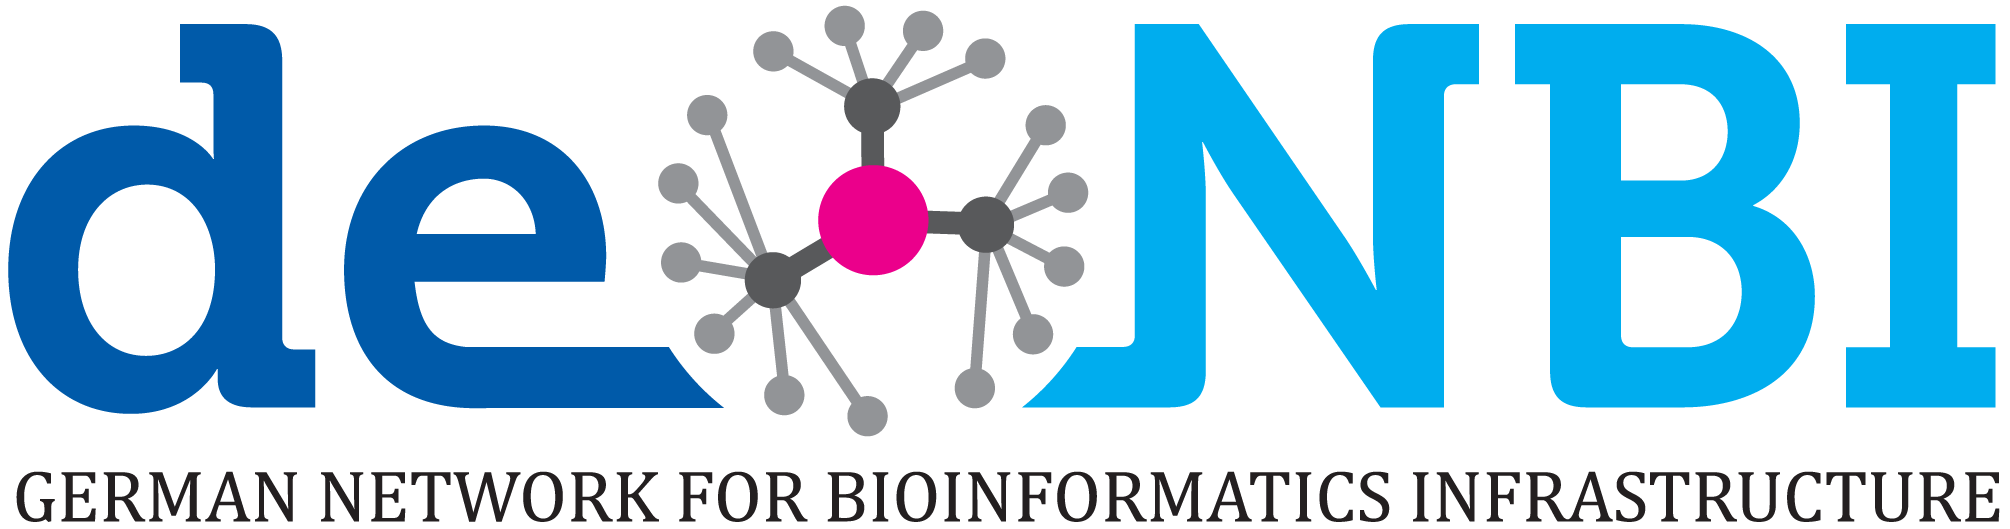 BSc and MSc Thesis Subjects of the Bioinformatics Group   WUR blogger